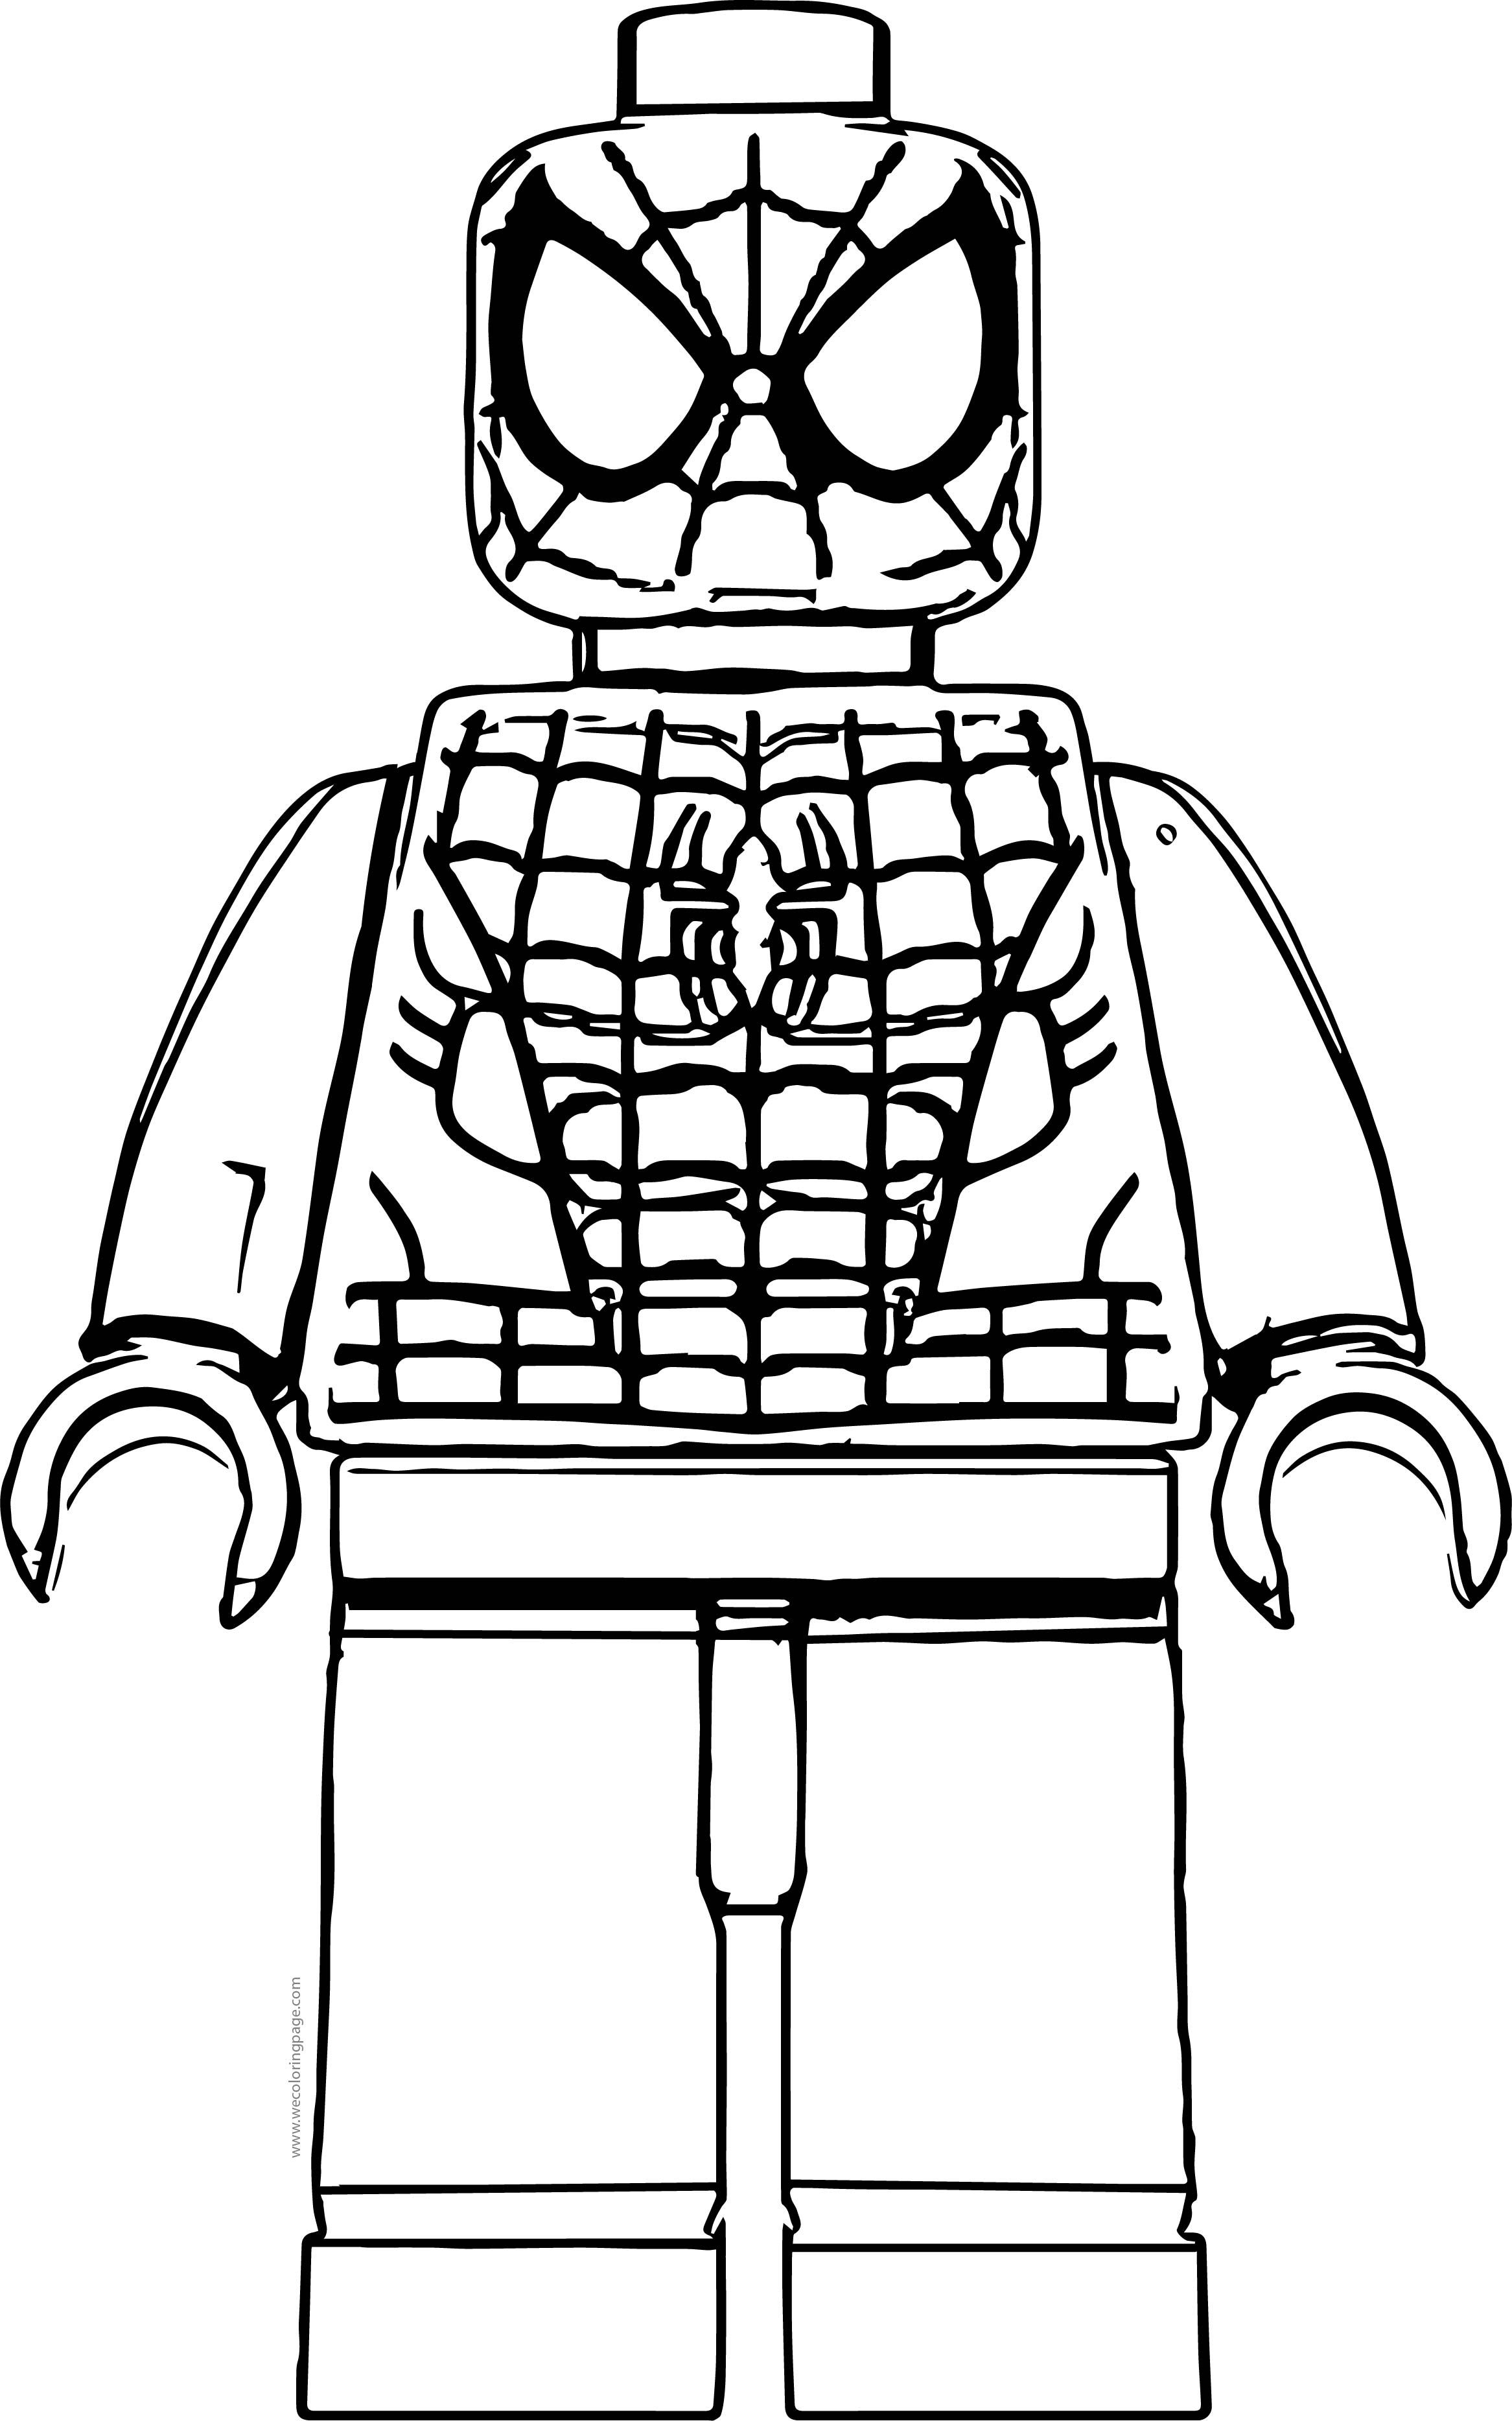 Pin By Wecoloringpage Coloring Pages On Wecoloringpage Lego